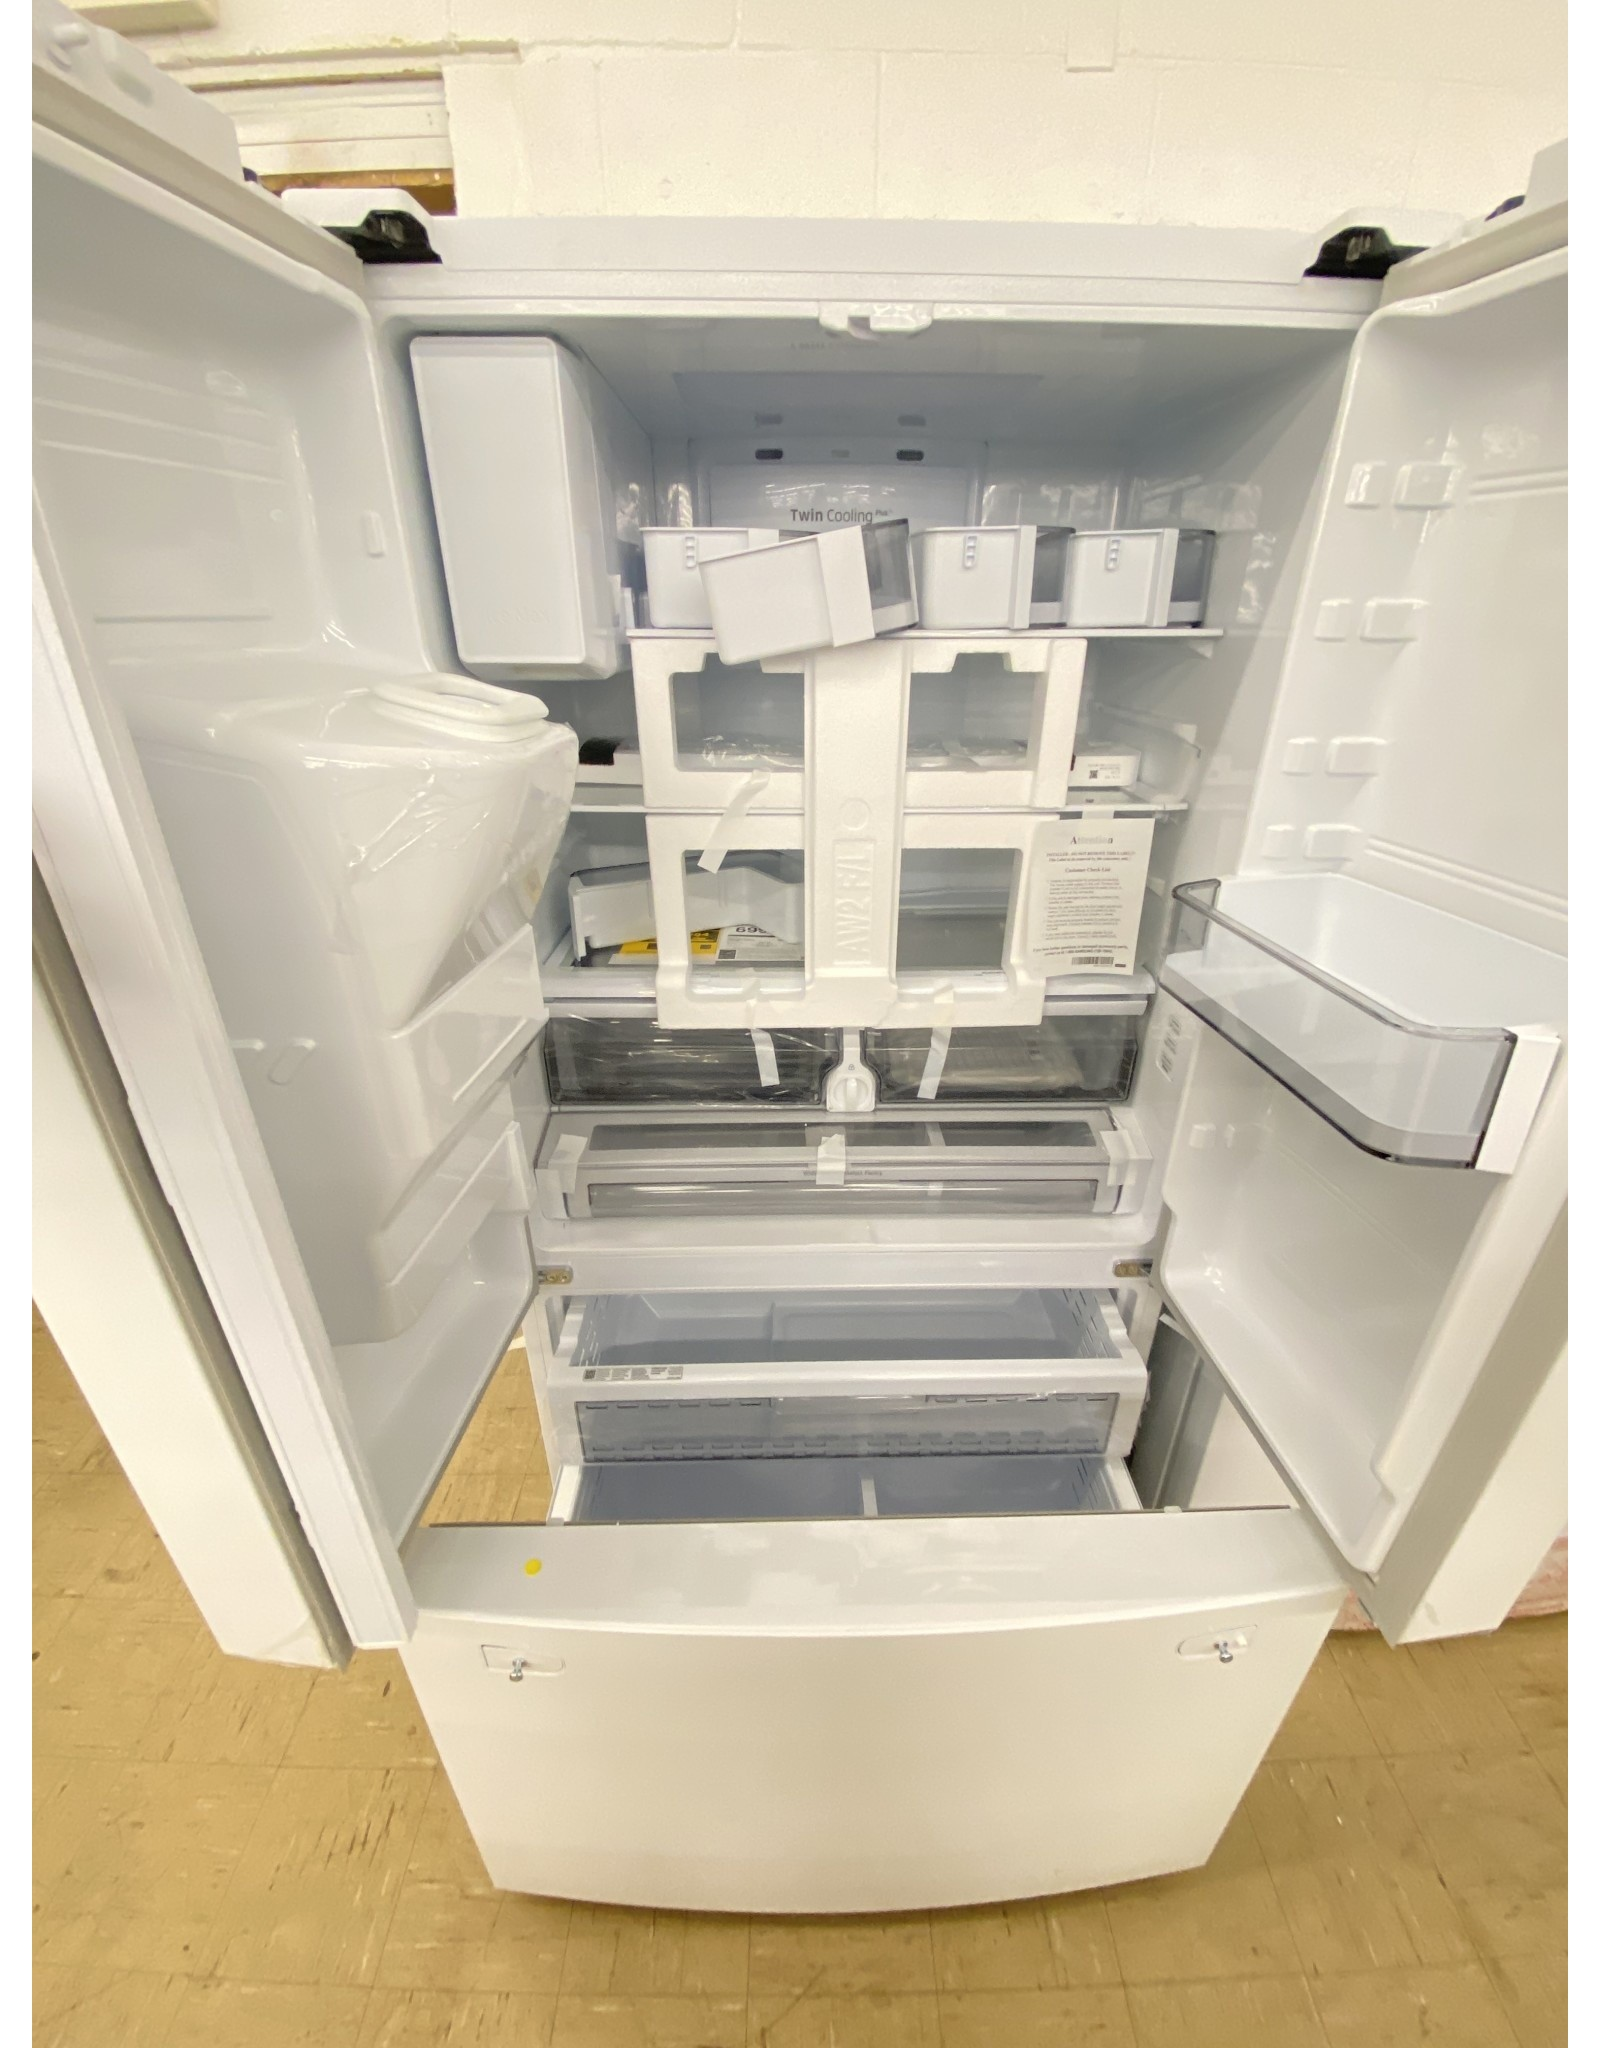 SAMSUNG RF23R6201WW 23 cu. ft. 3-Door French Door Refrigerator in White with CoolSelect Pantry, Counter Depth